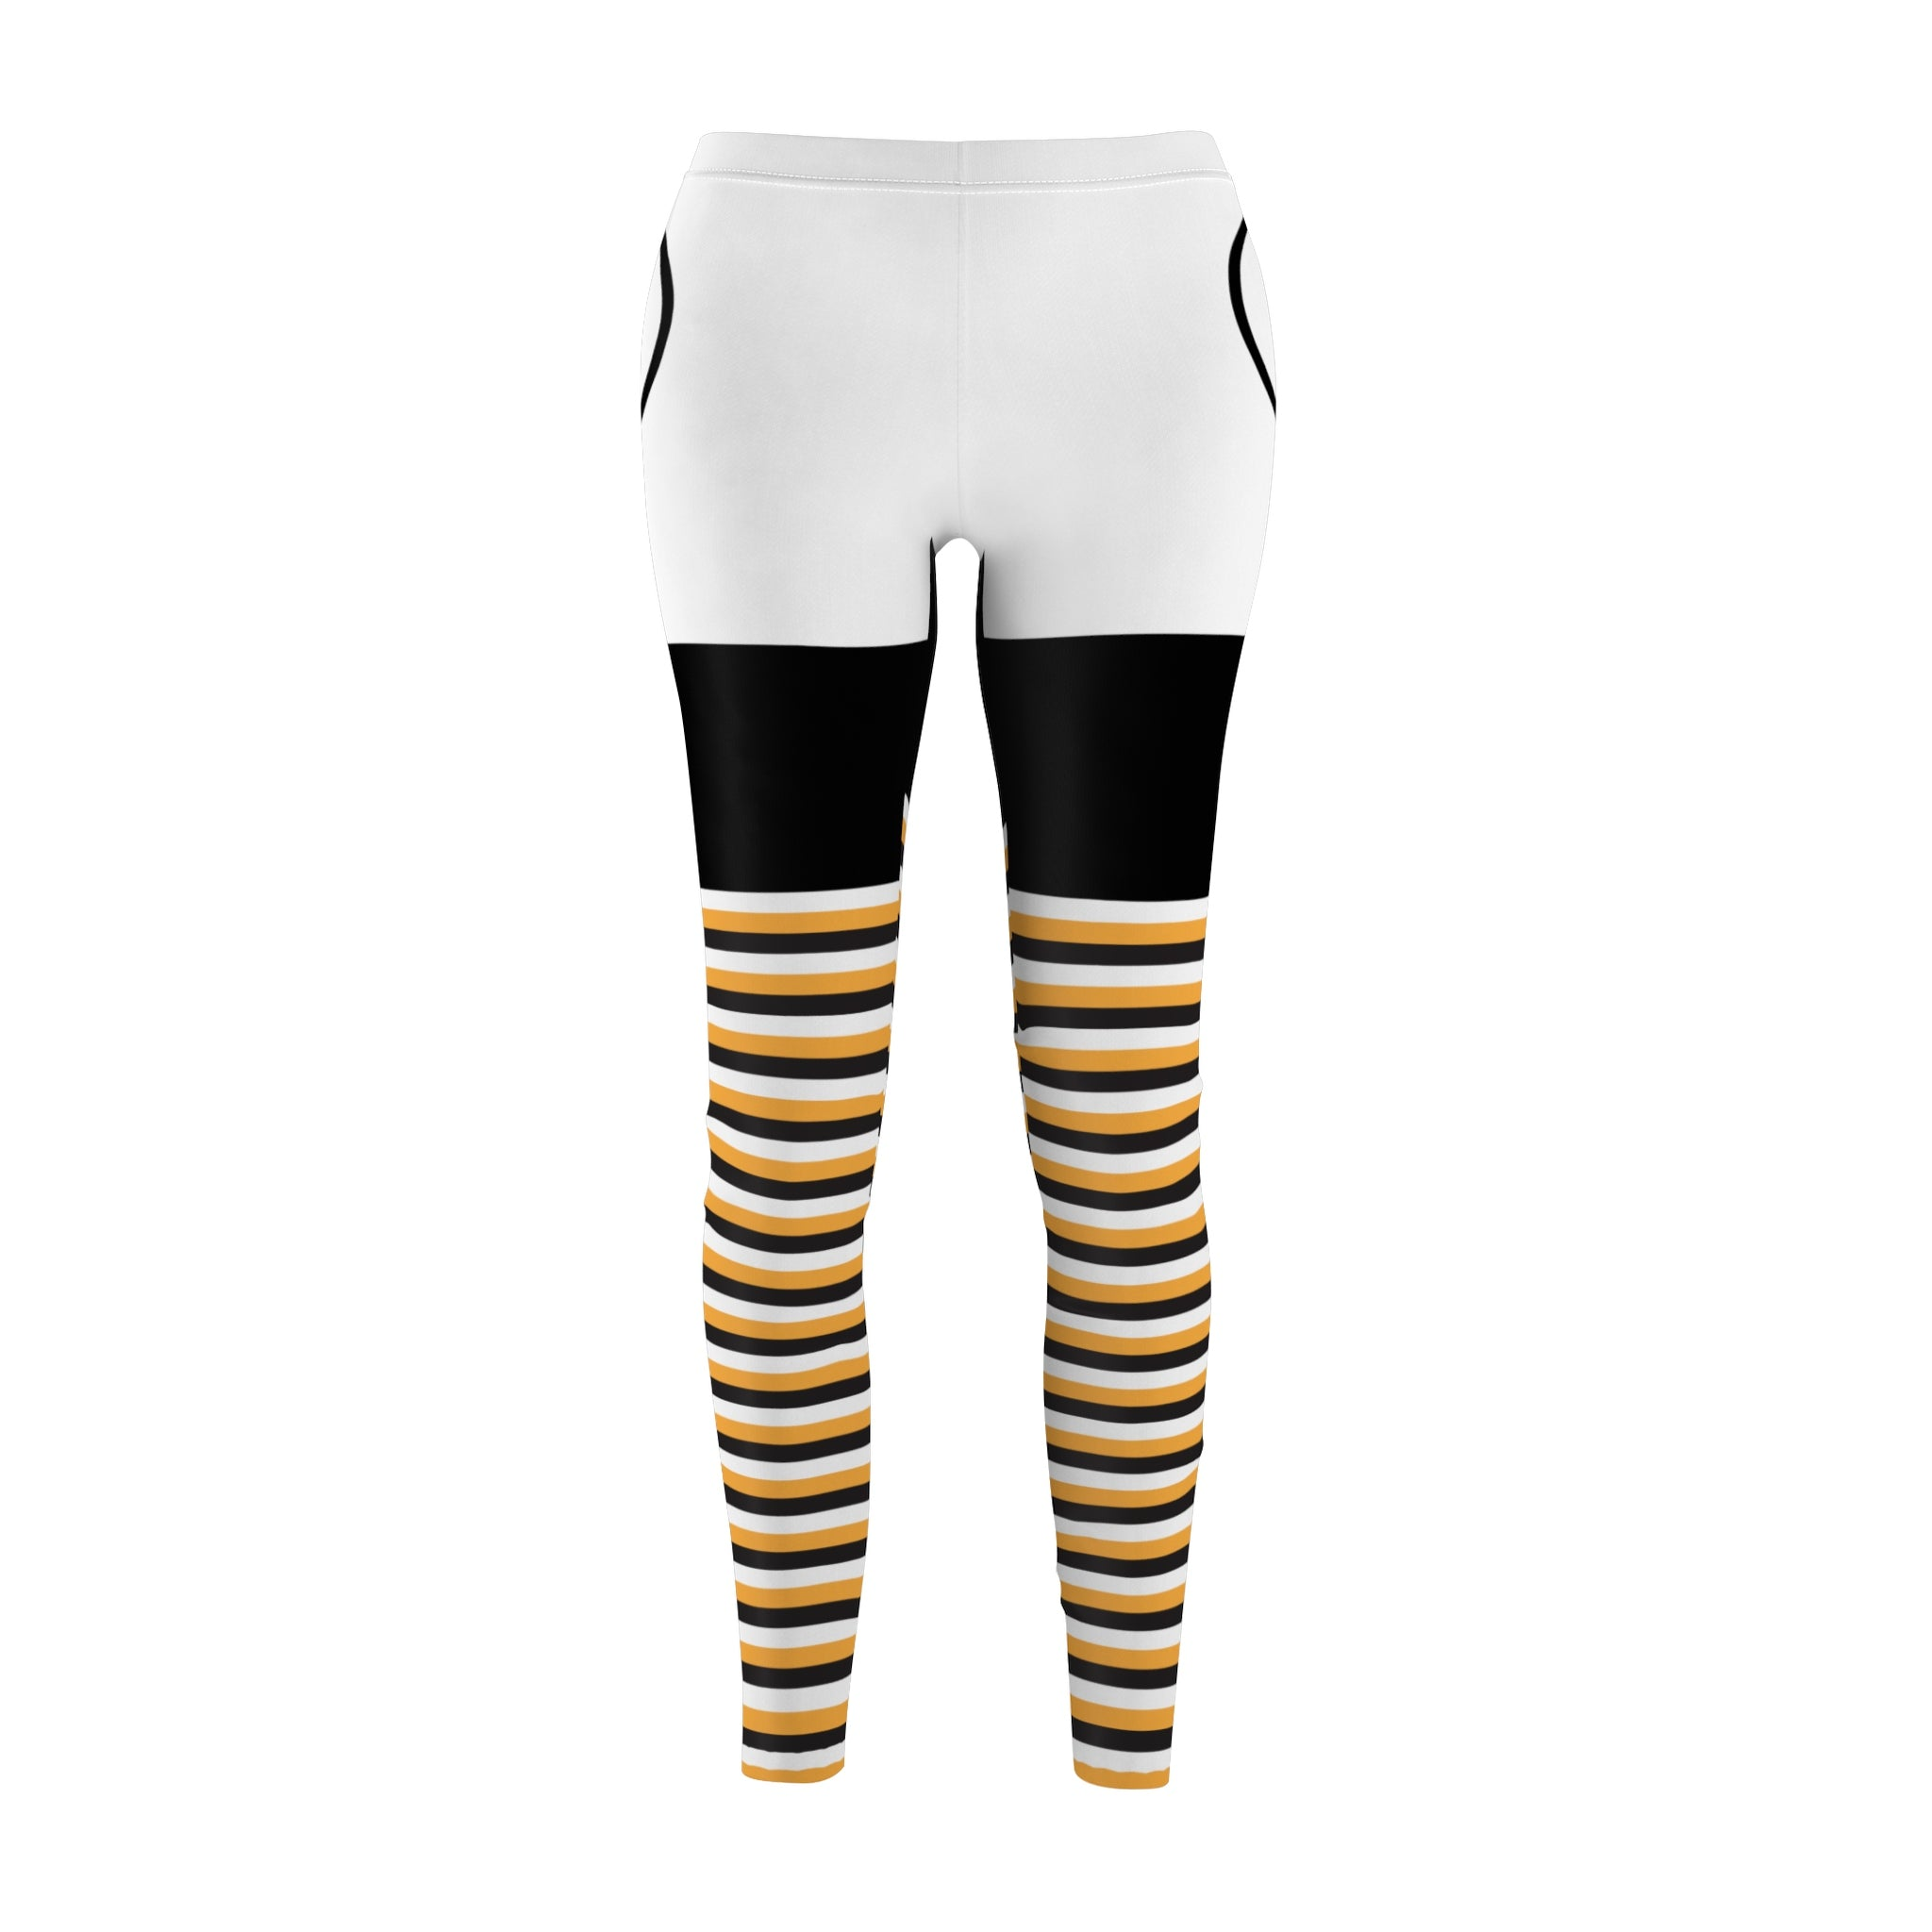 The 'BTC Stripe' Leggings